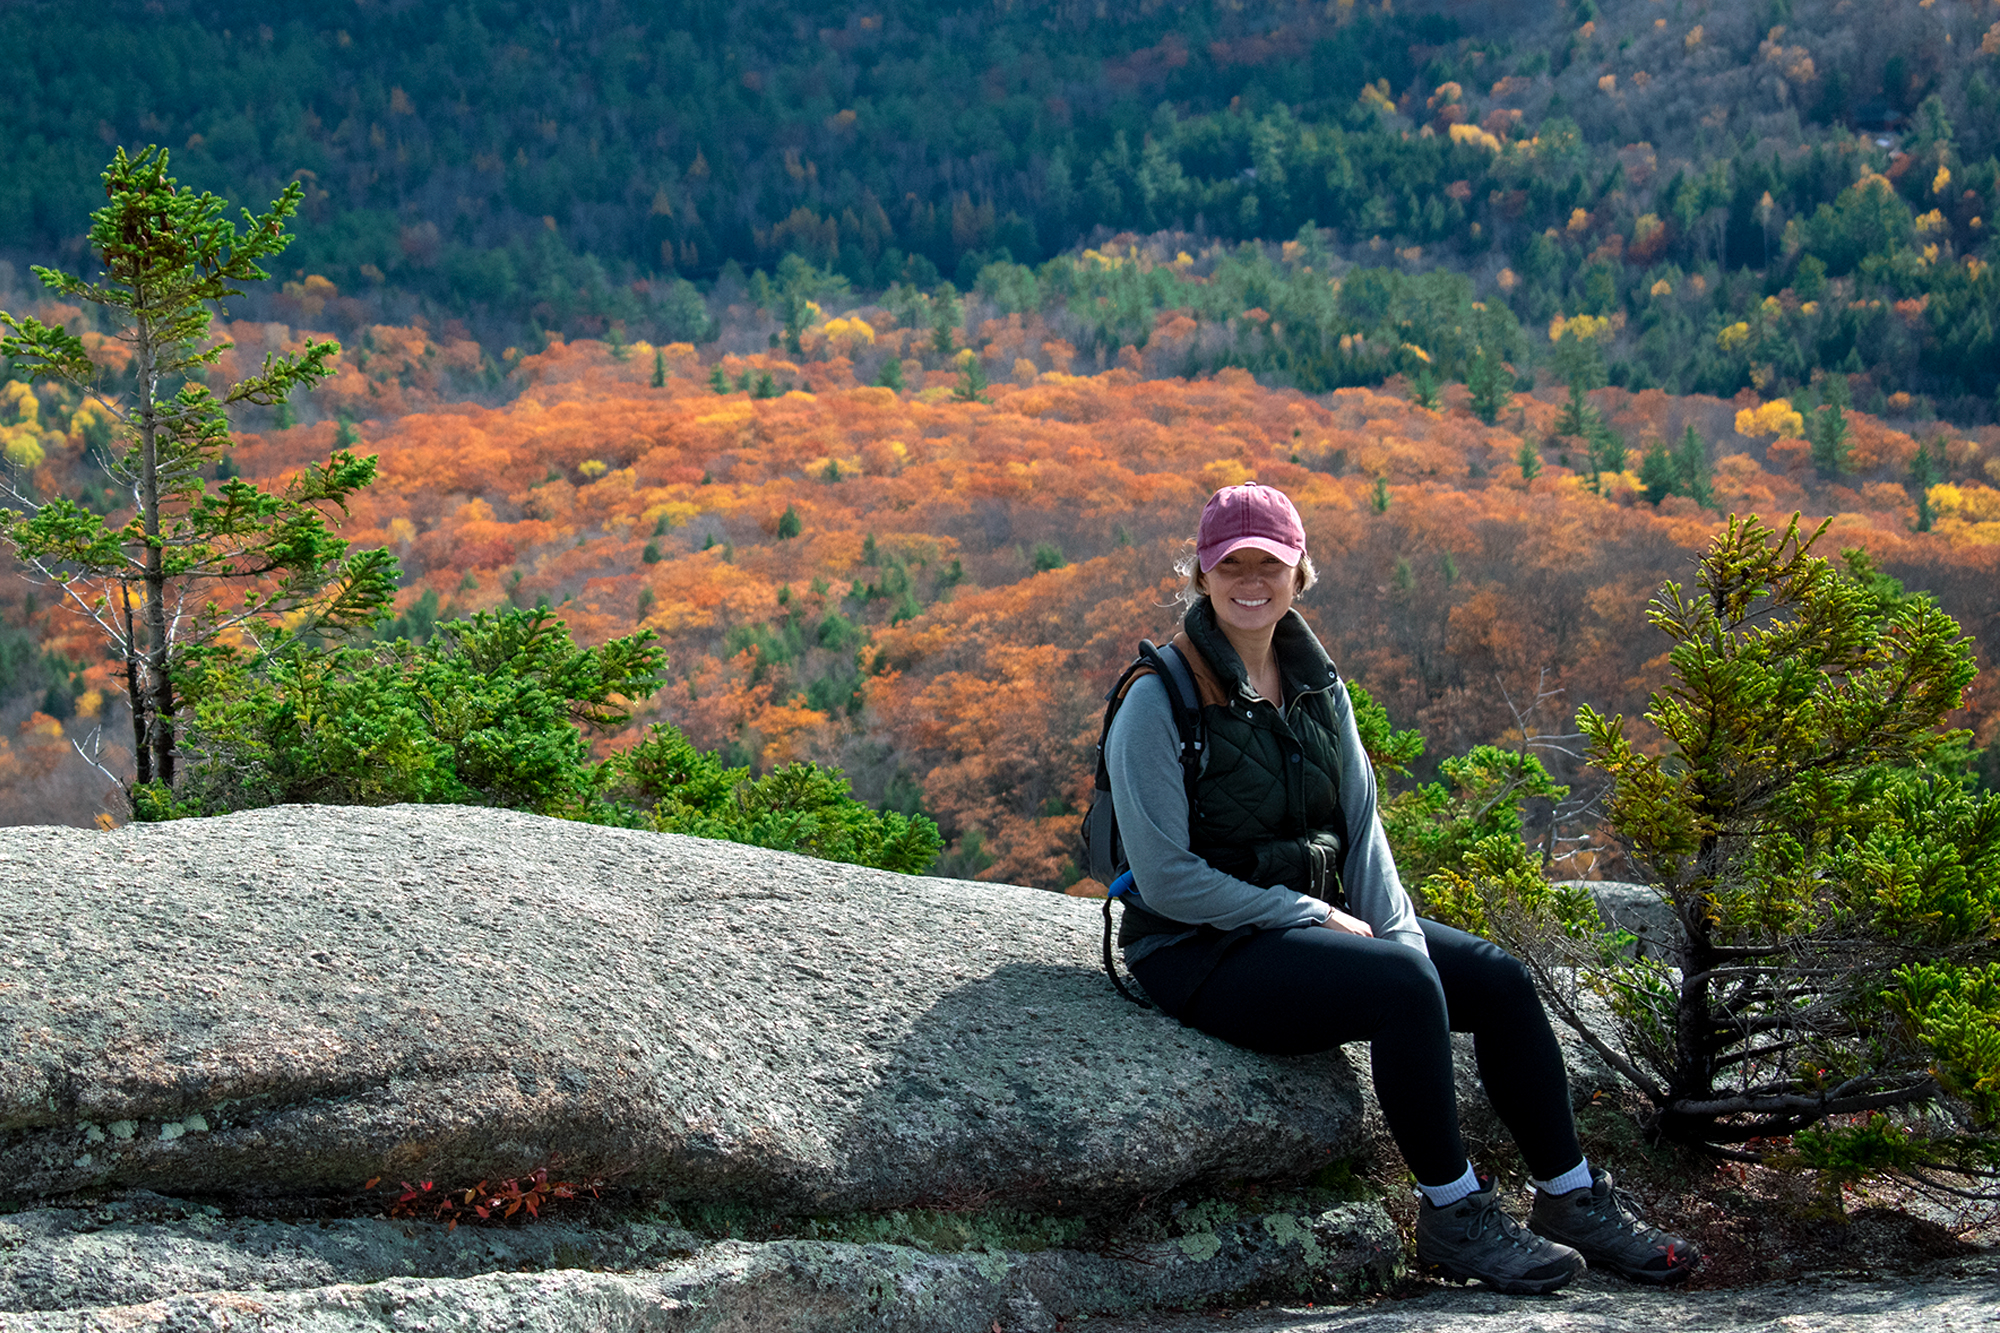 Amanda in the mountains of New Hampshire.